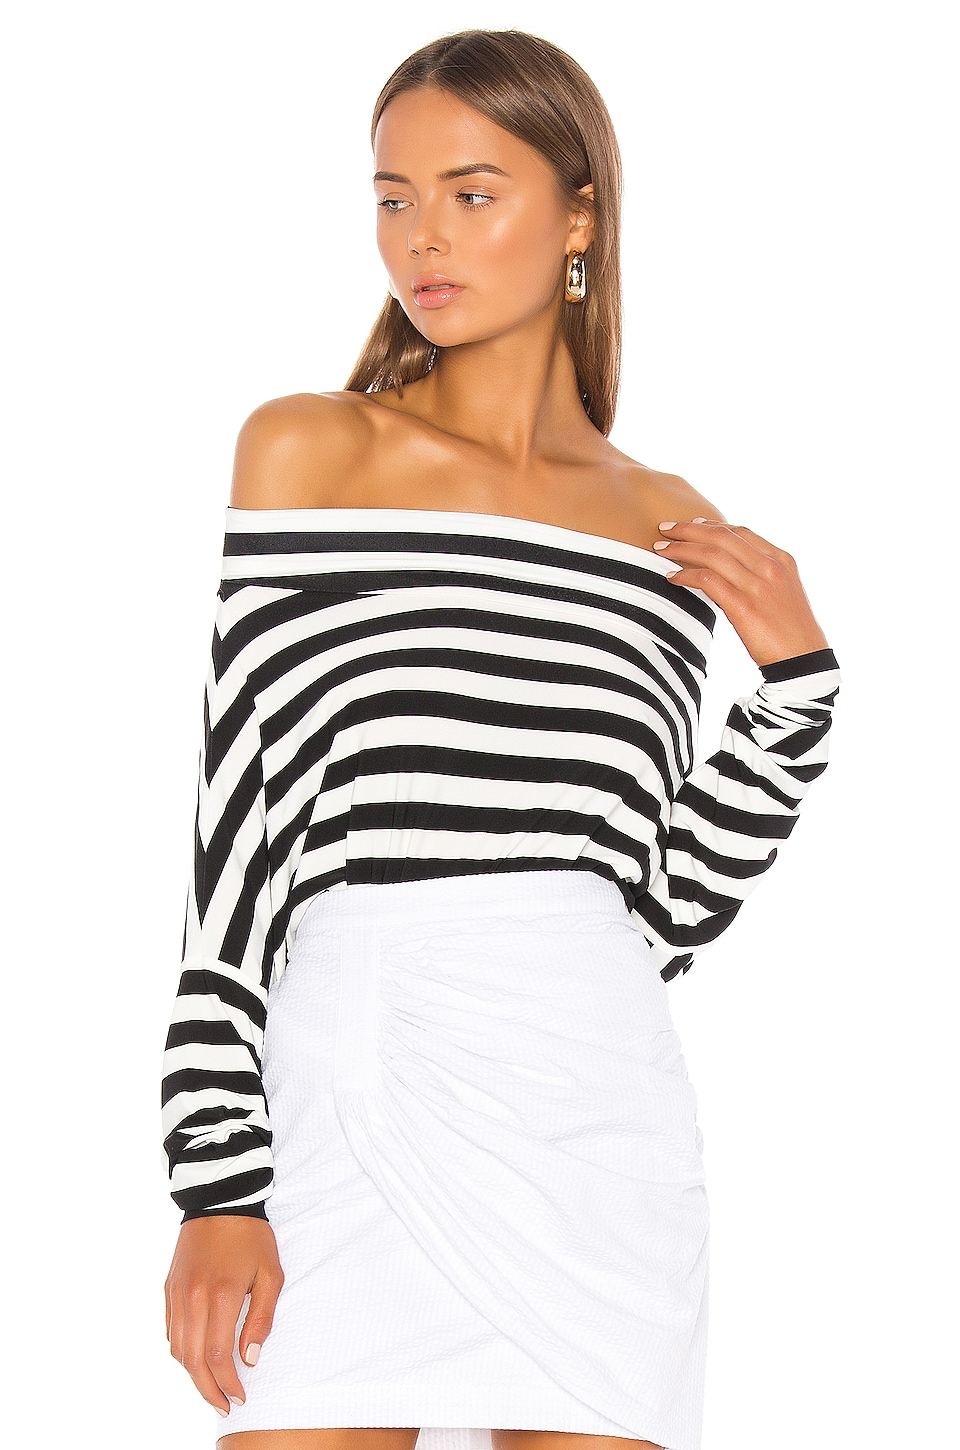 Norma Kamali All In One Bodysuit in Stripe